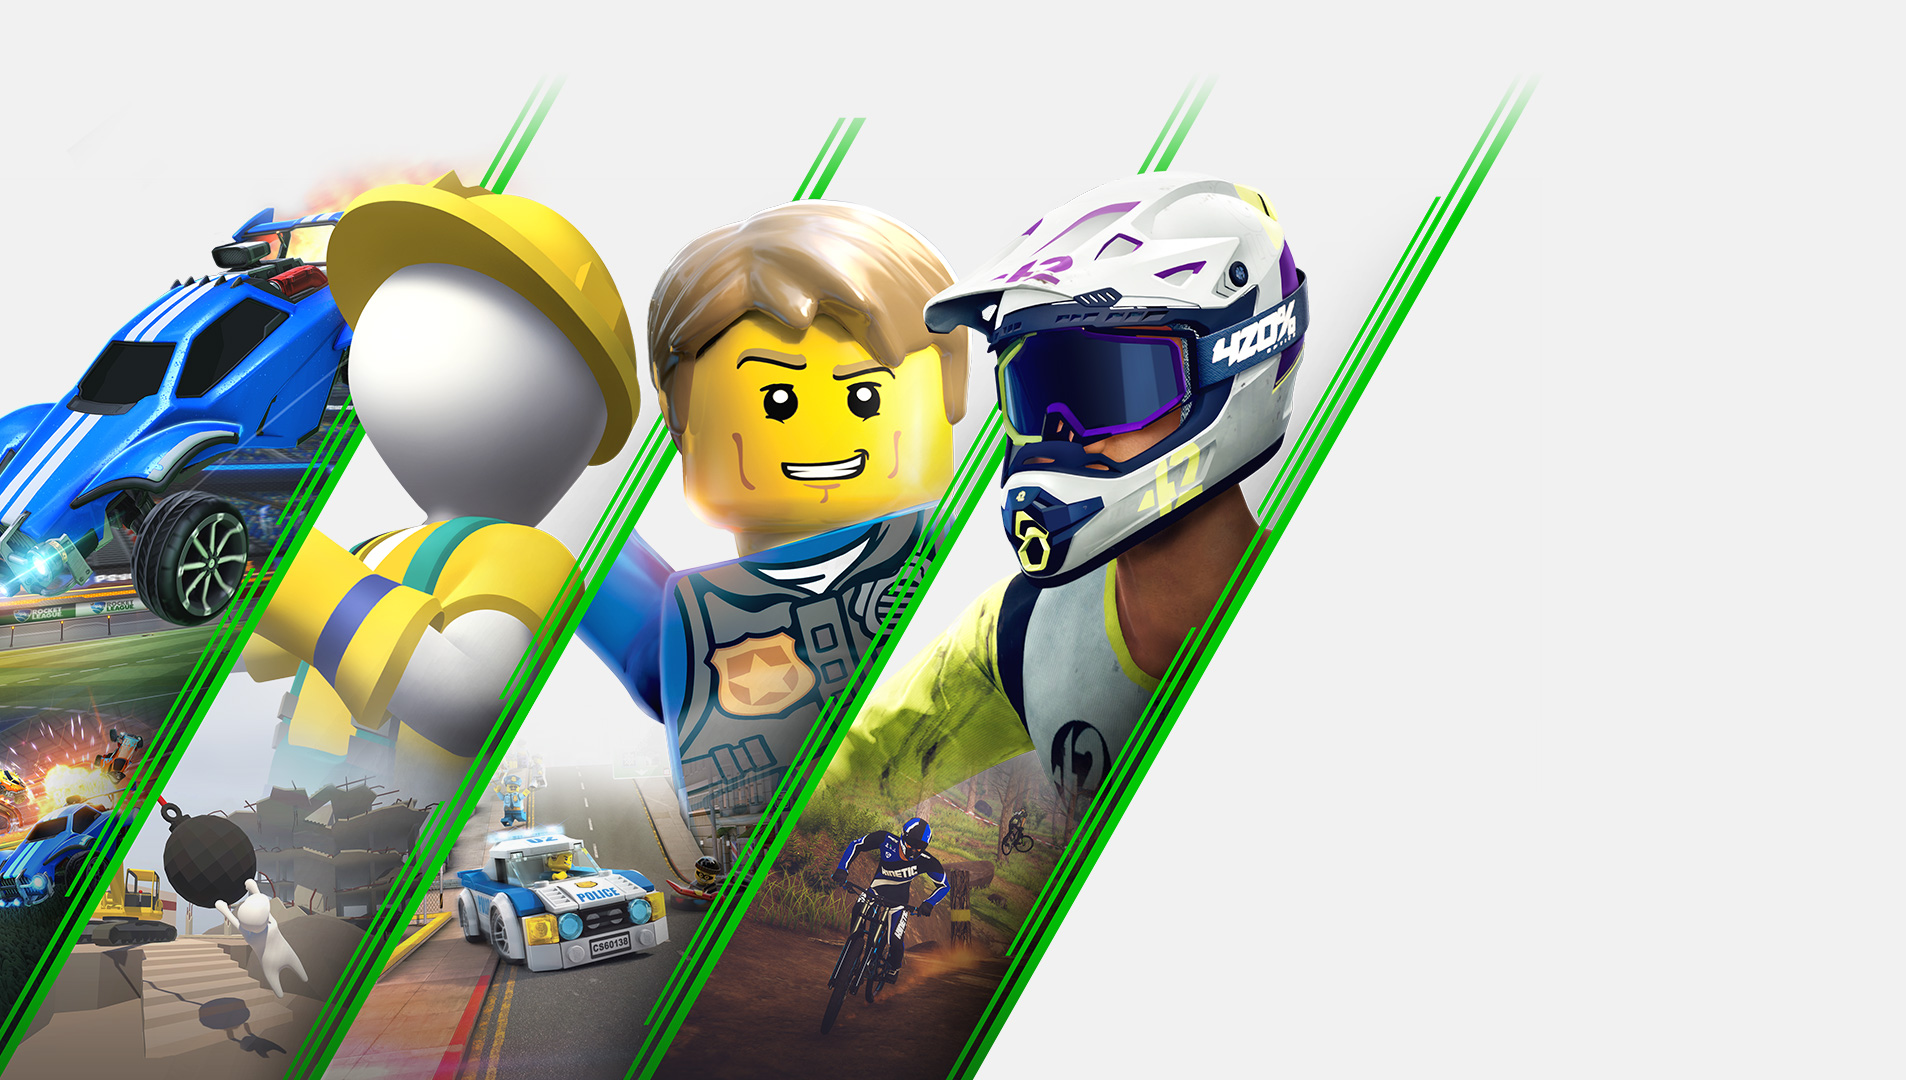 Collage de personnages de Rocket League, Human Fall Flat, Lego City Undercover, Descenders et Guacamelee 2